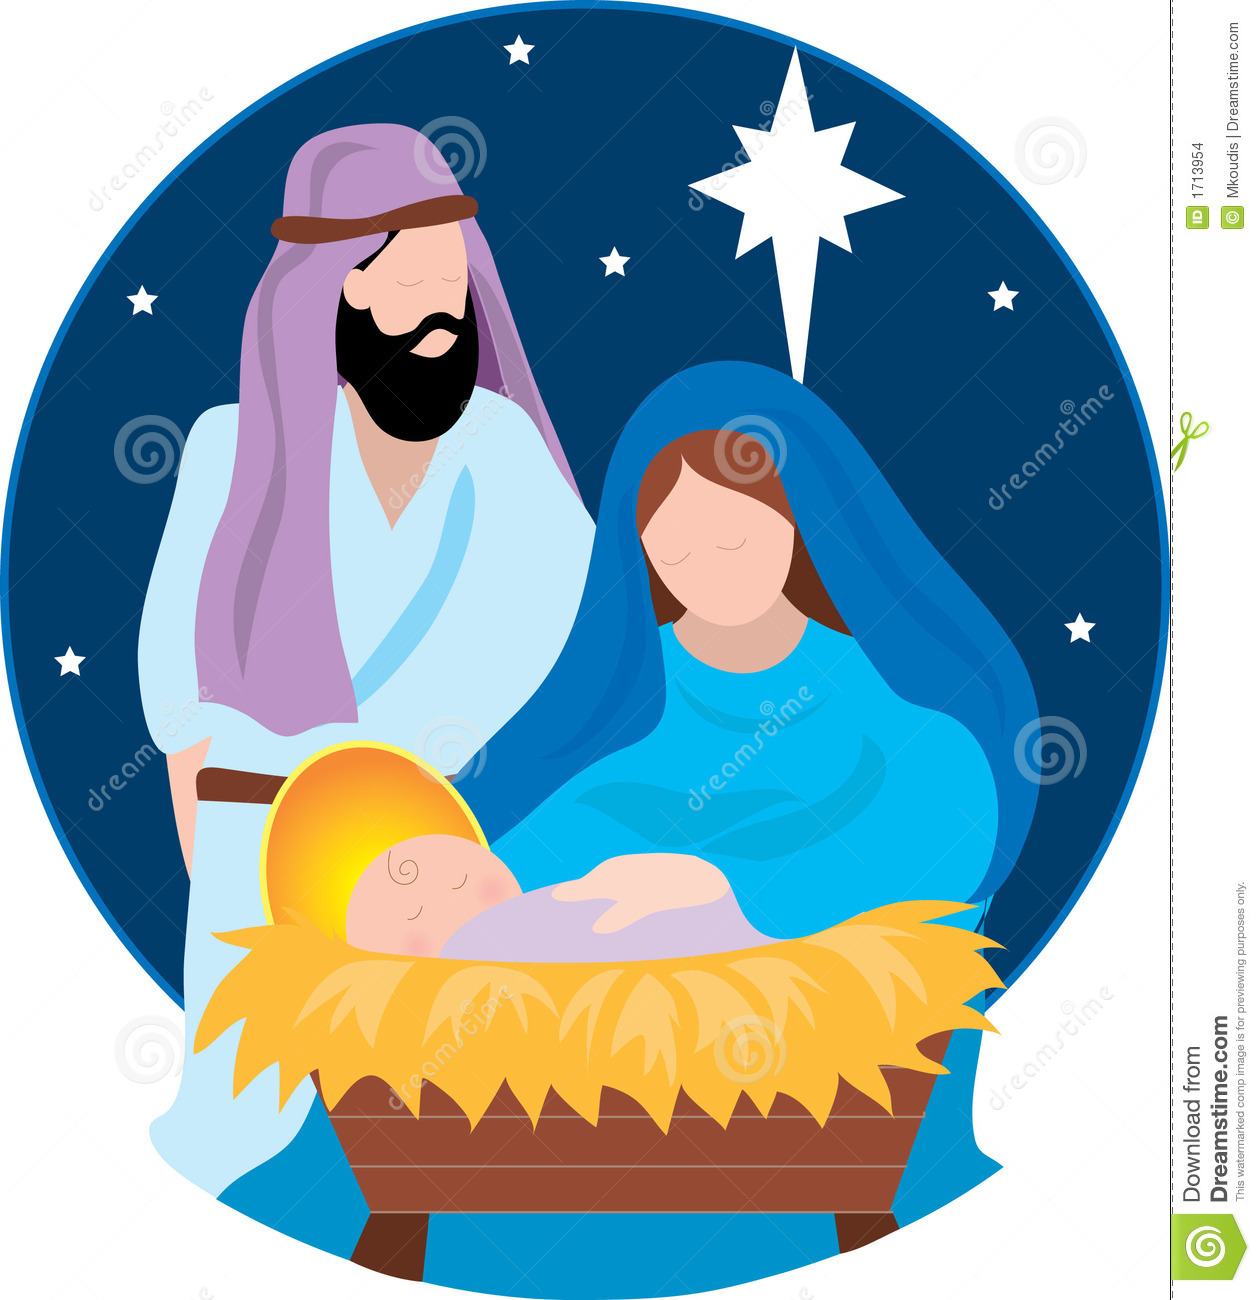 More similar stock images of ` Nativity Scene `